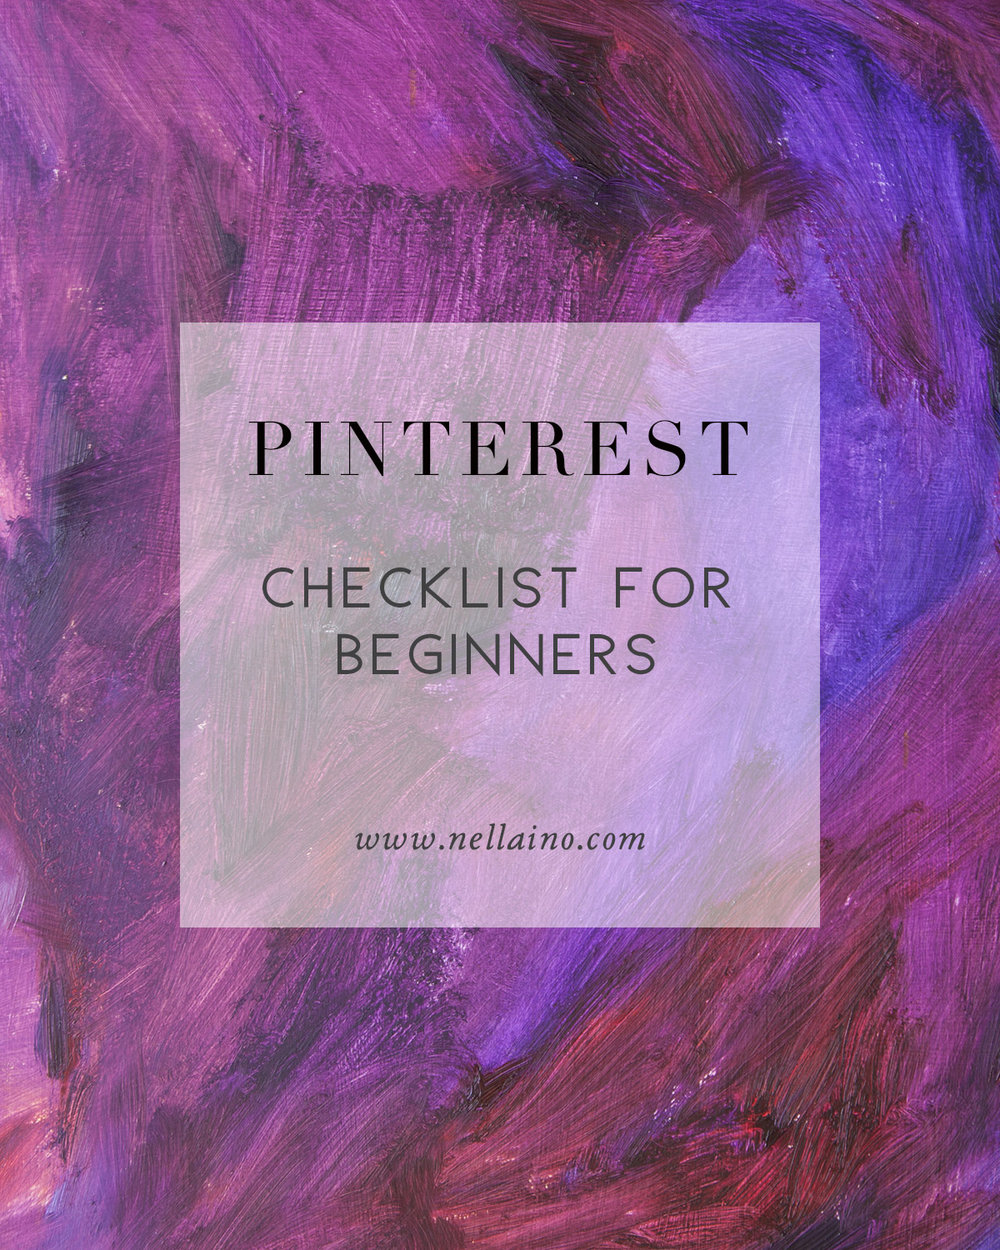 Pinterest-checklist-for-beginners.jpg